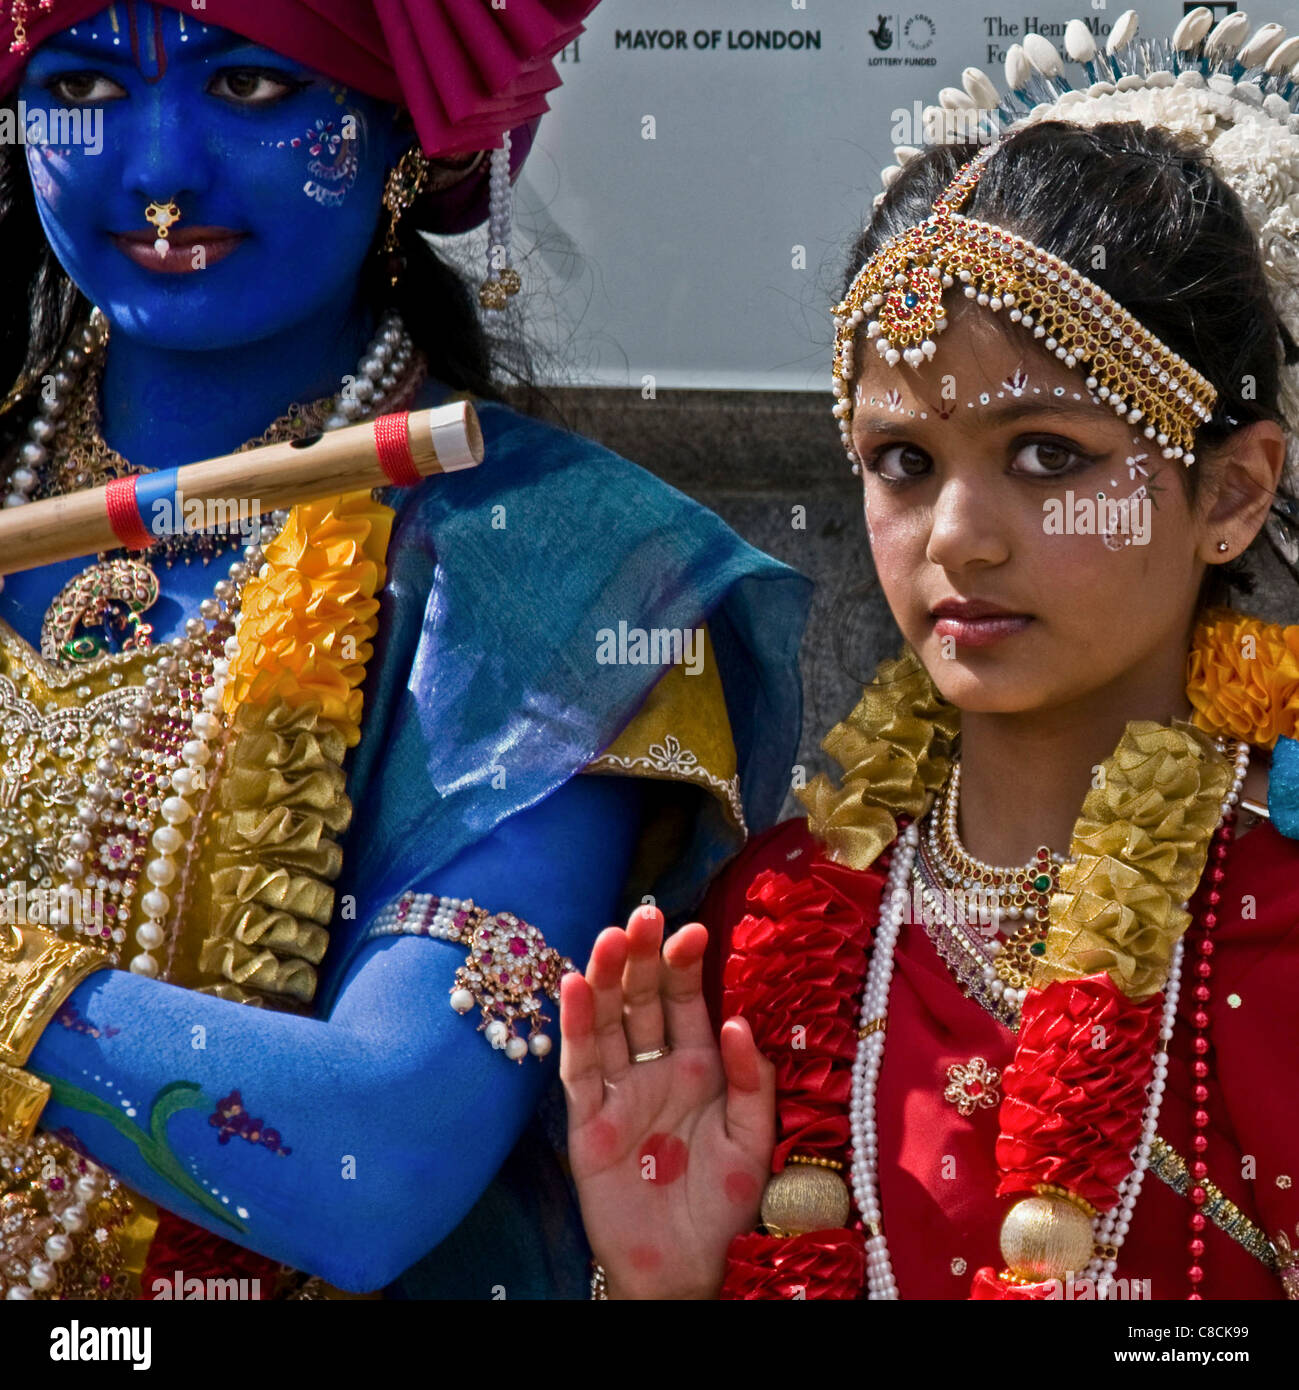 Girls in costumes of Krishna and his mistress/wife -Radha,The Rathayatra Chariots Festival - Stock Image